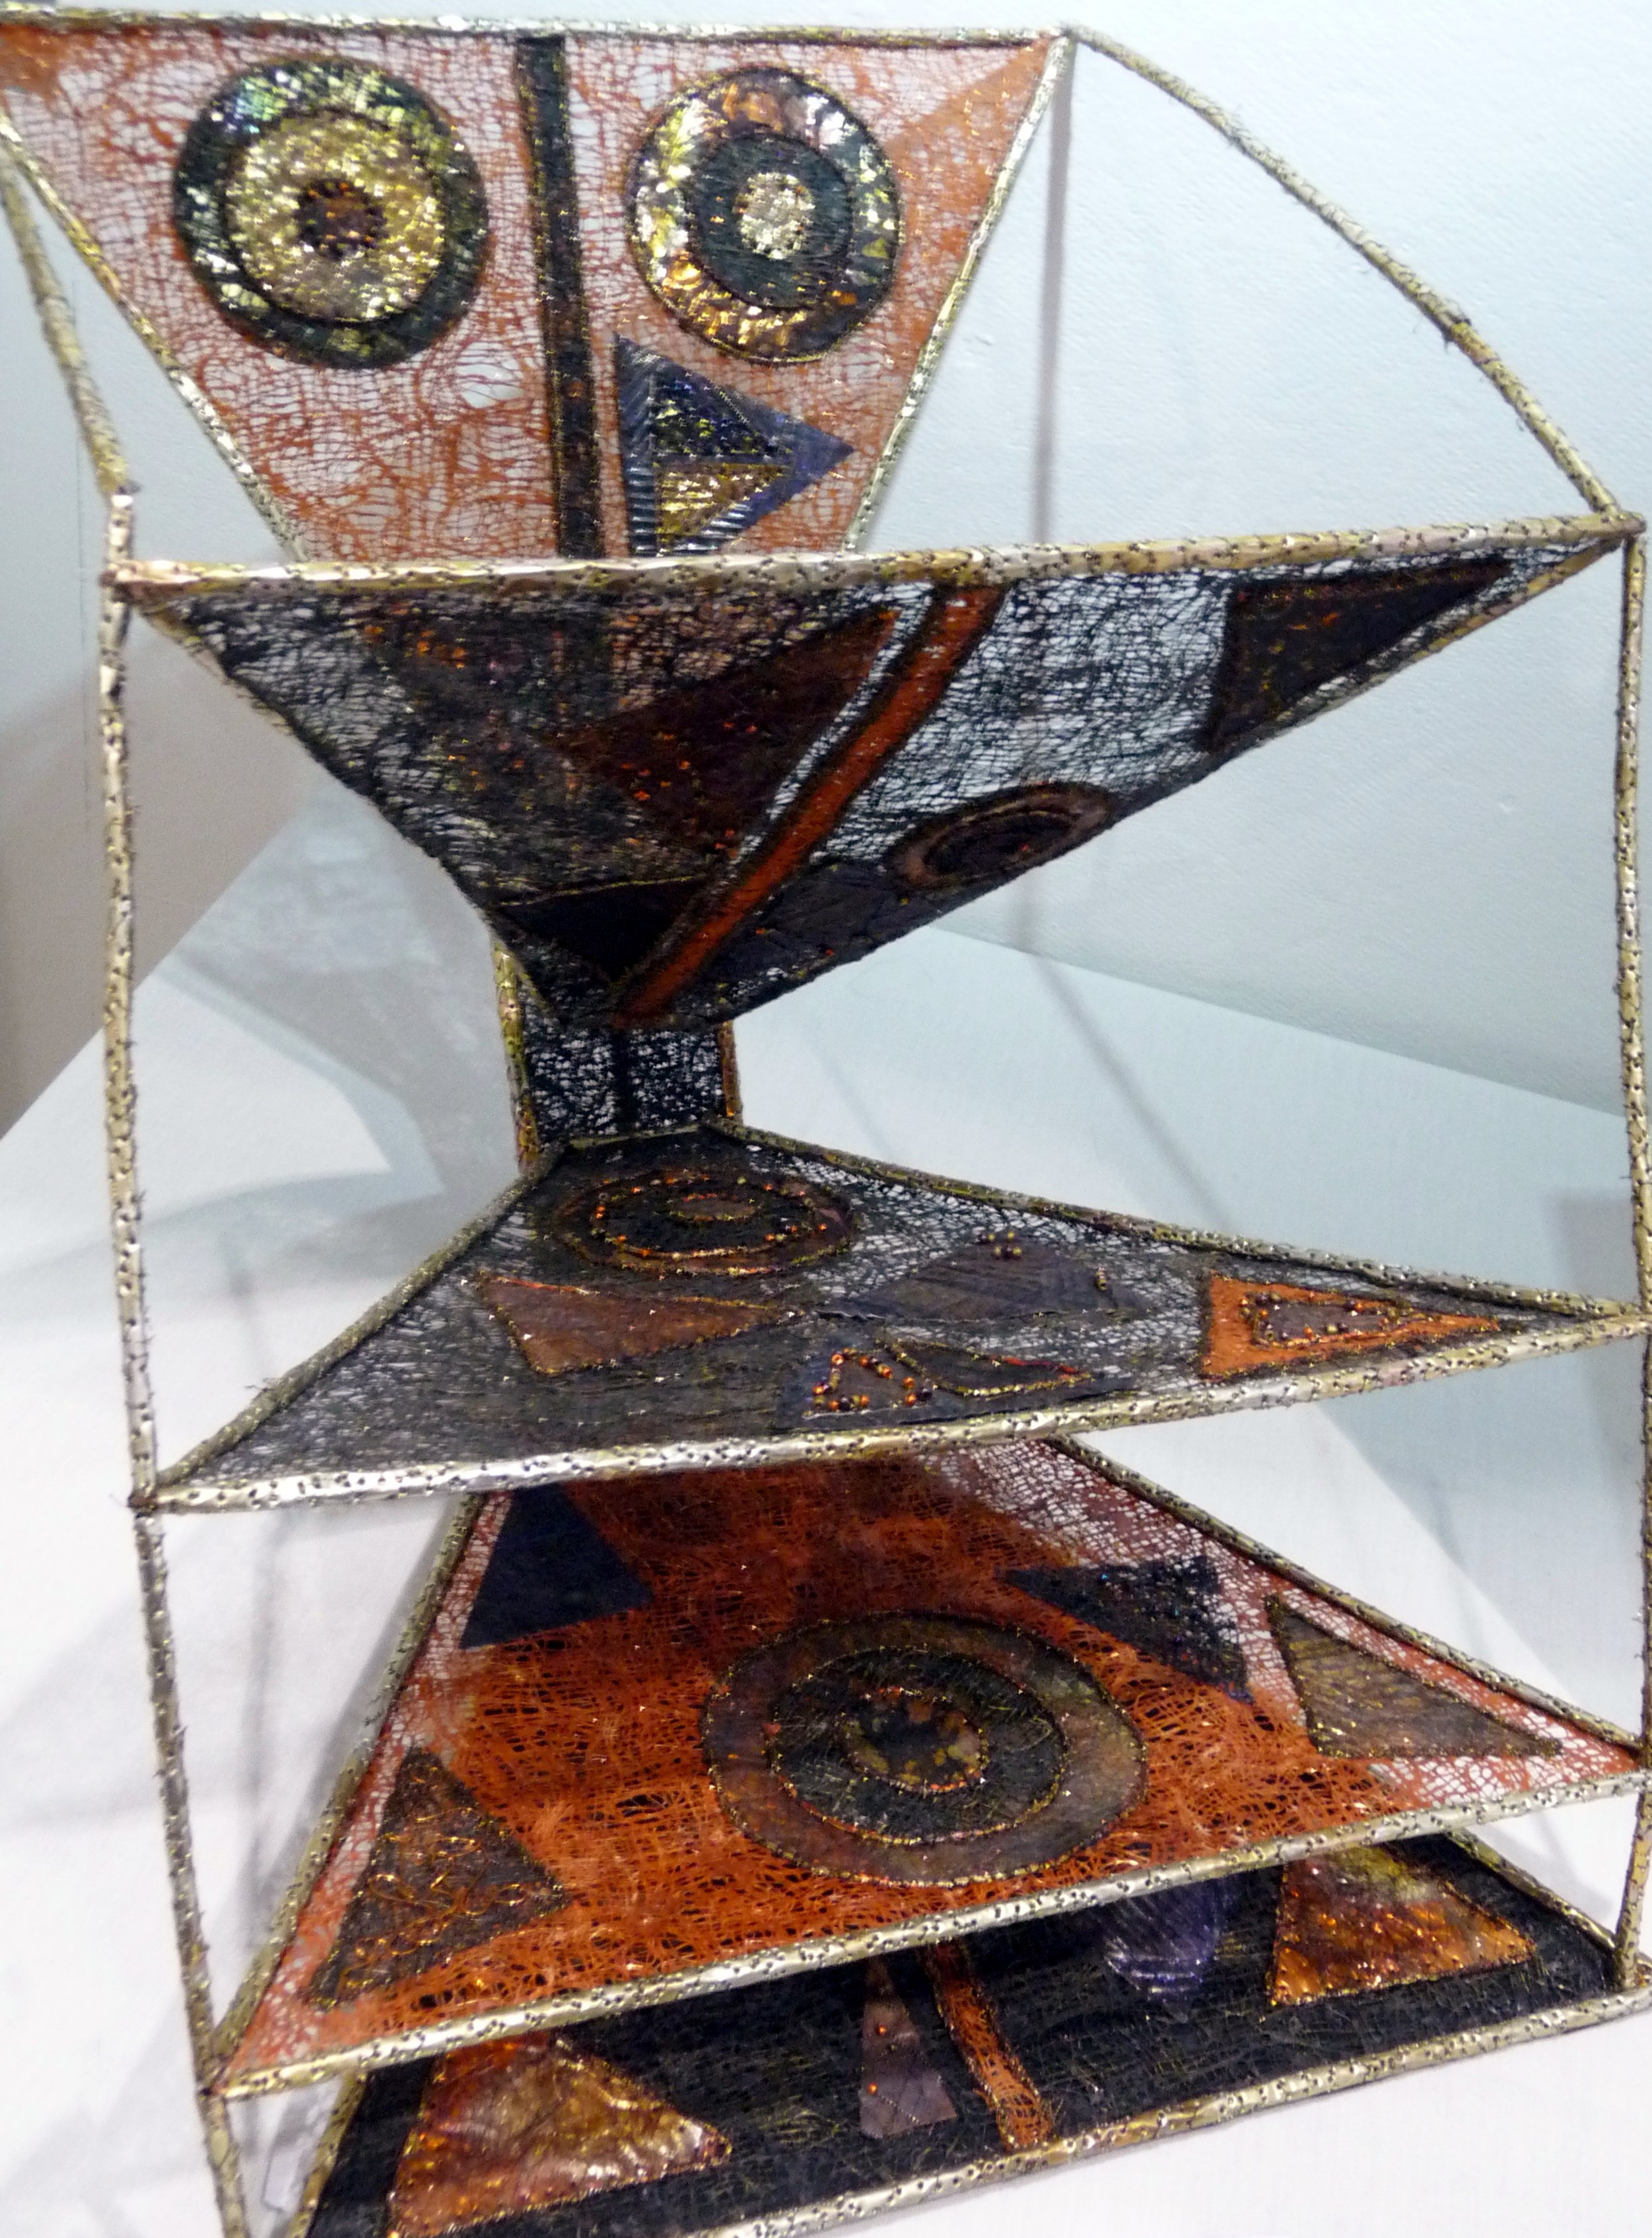 ANCESTRAL LINKS by Alison Reynolds, metals including recycled drinks cans, hand & machine stitched